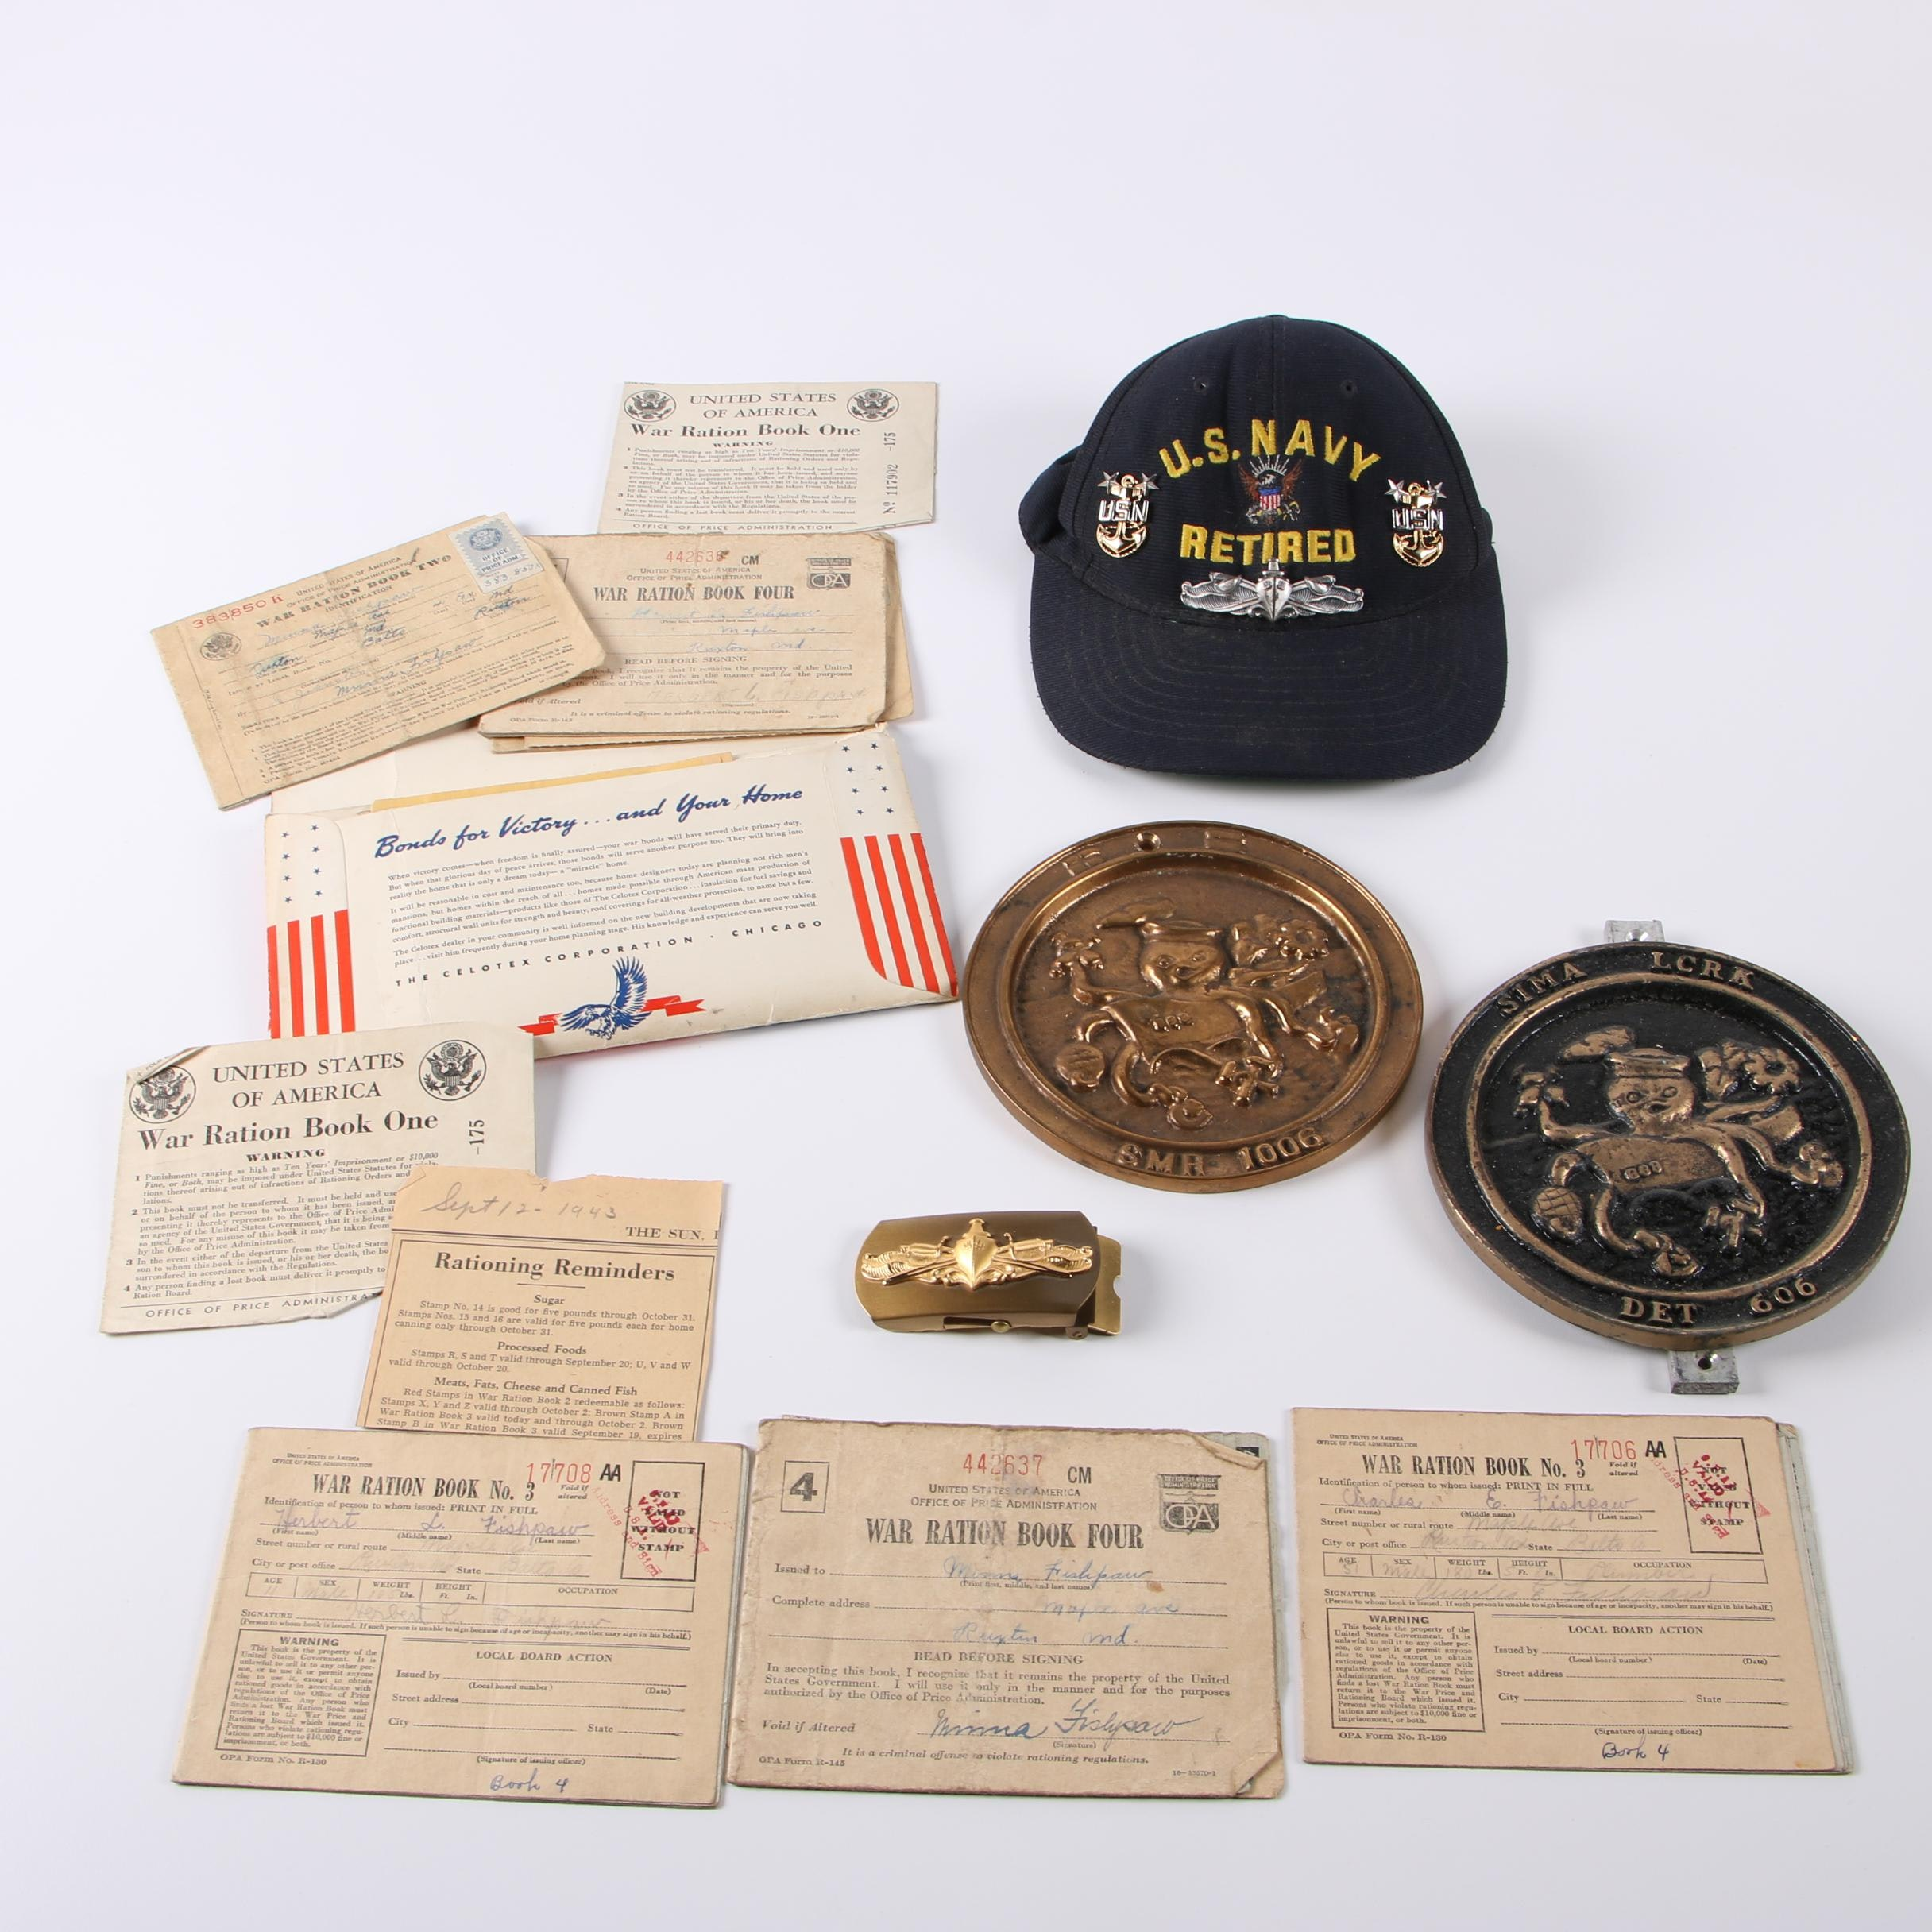 U. S. Navy Memorabilia and WWII Ration Books